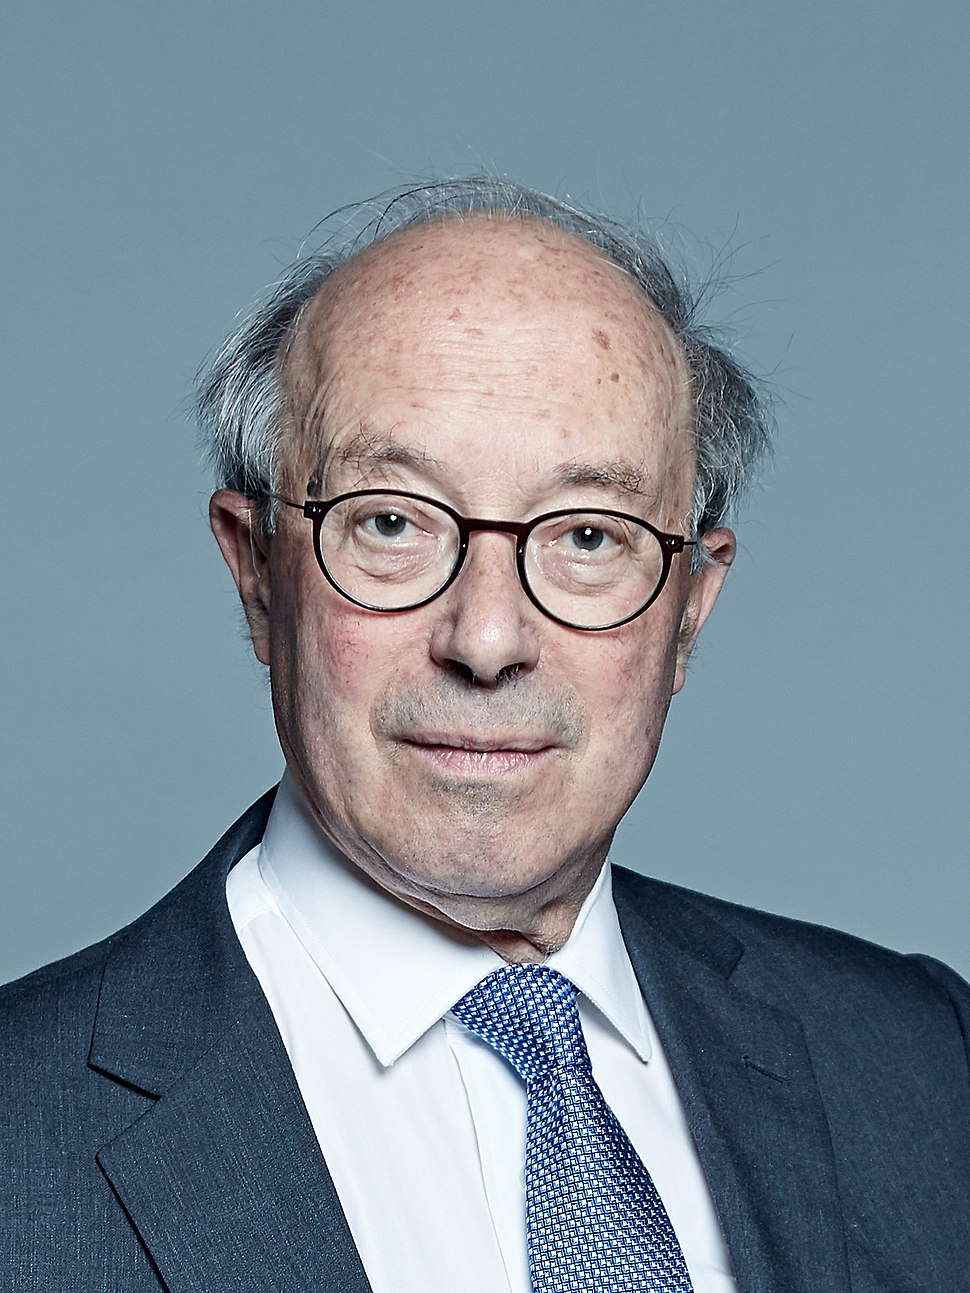 Official portrait of Lord Hope of Craighead crop 2